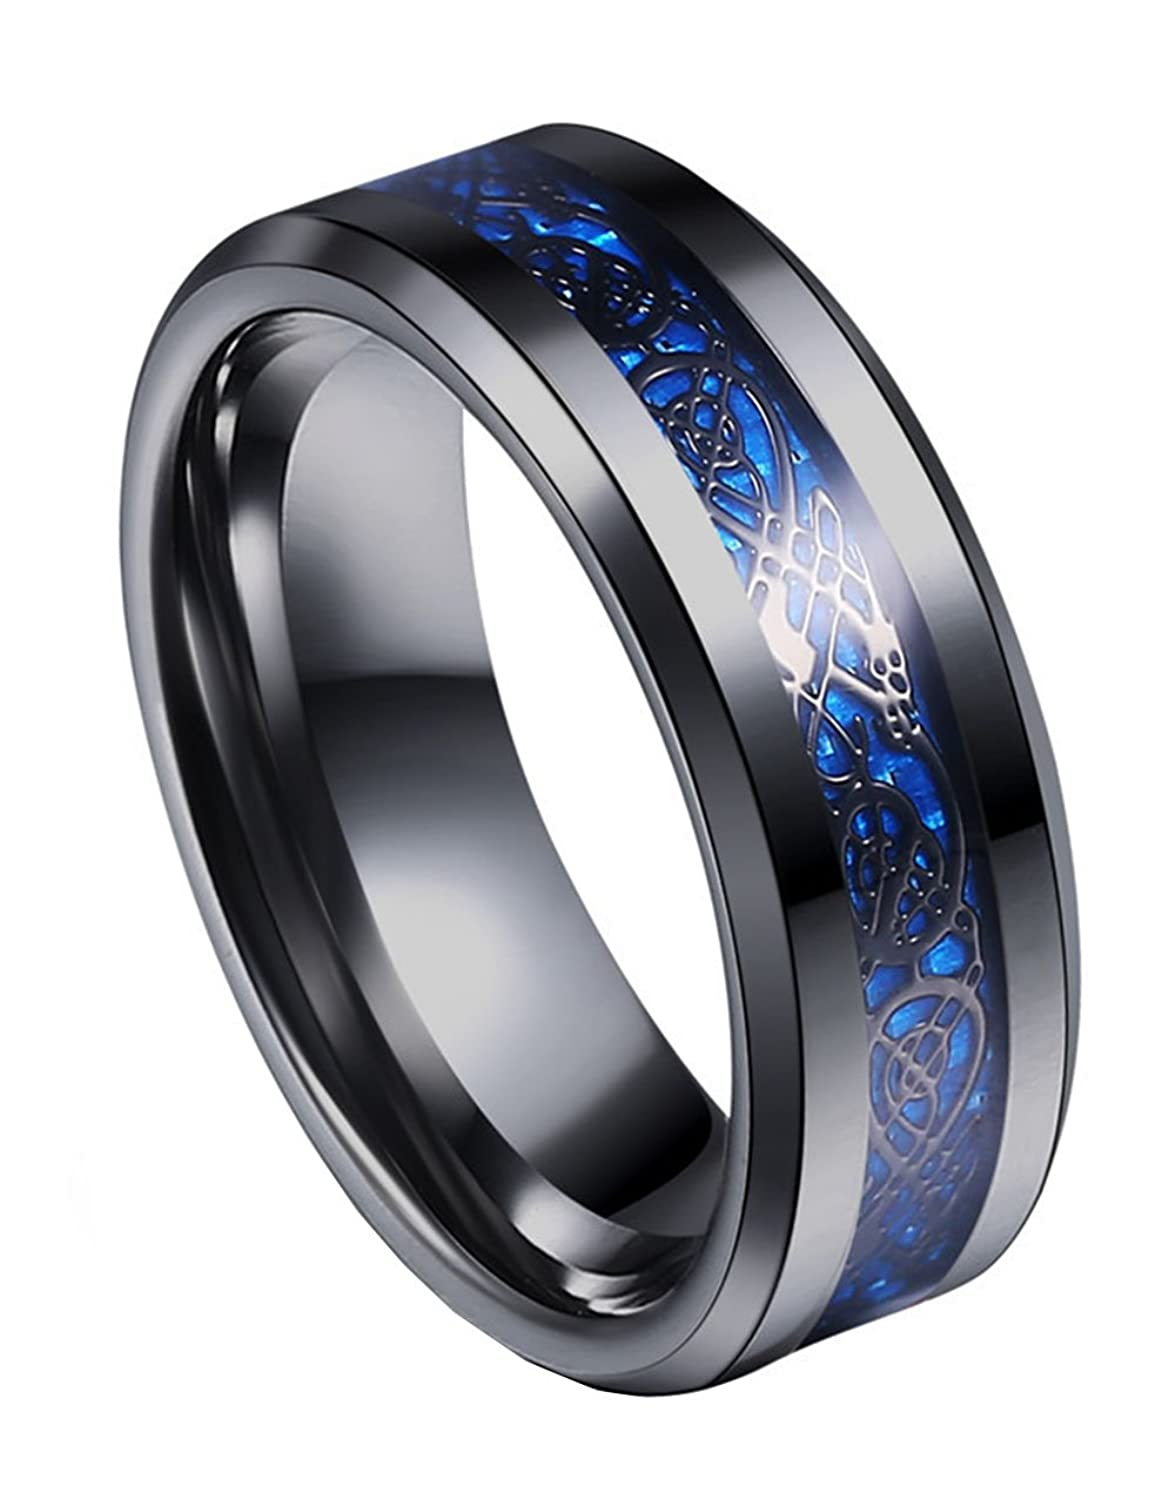 tanyoyo 8mm blue black dragon pattern beveled edges celtic rings jewelry wedding band for men 7 14amazoncom - Blue Wedding Ring